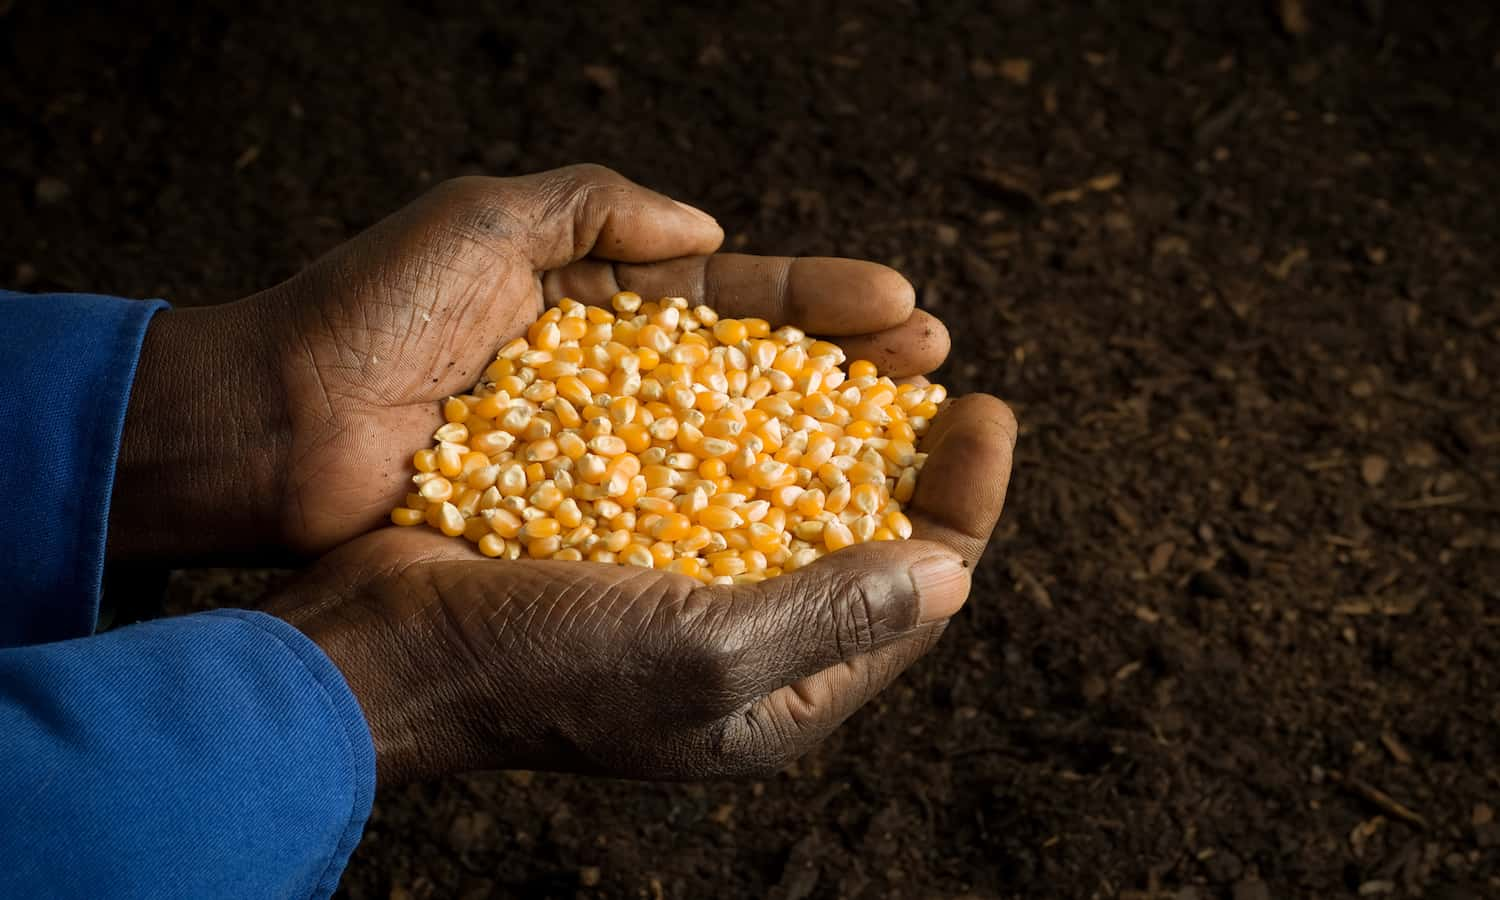 CORAF is Africa's largest sub-regional research organization conducting, coordinating, and disseminating research on sustainable agriculture practices across Central and West Africa.